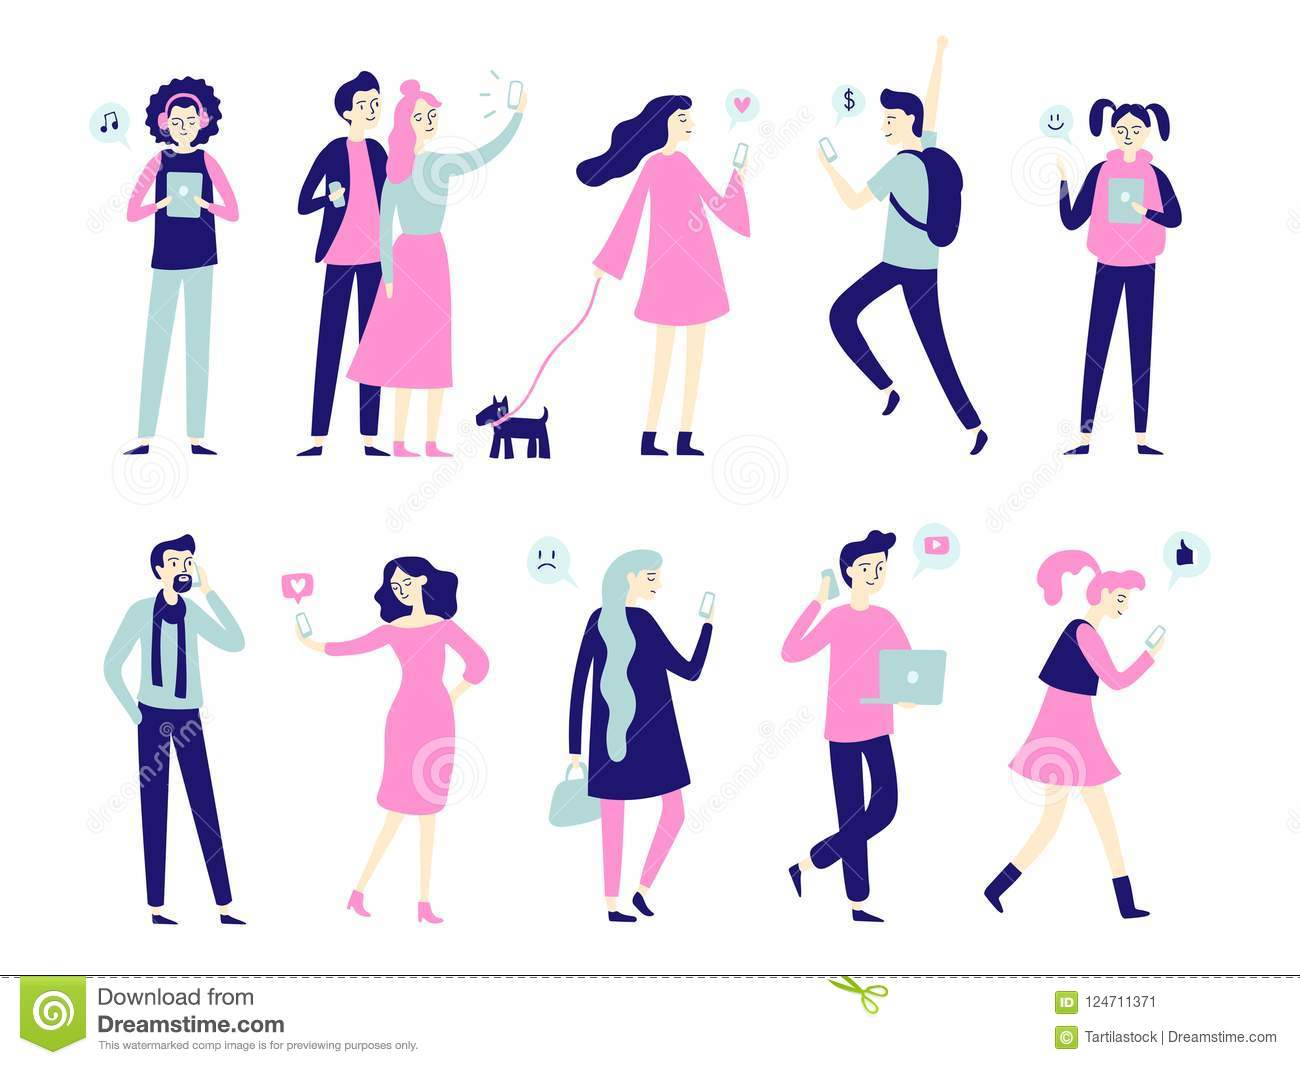 Character with smartphone. Smartphones in people hands, man talk on mobile phone or woman taking selfie. Flat characters